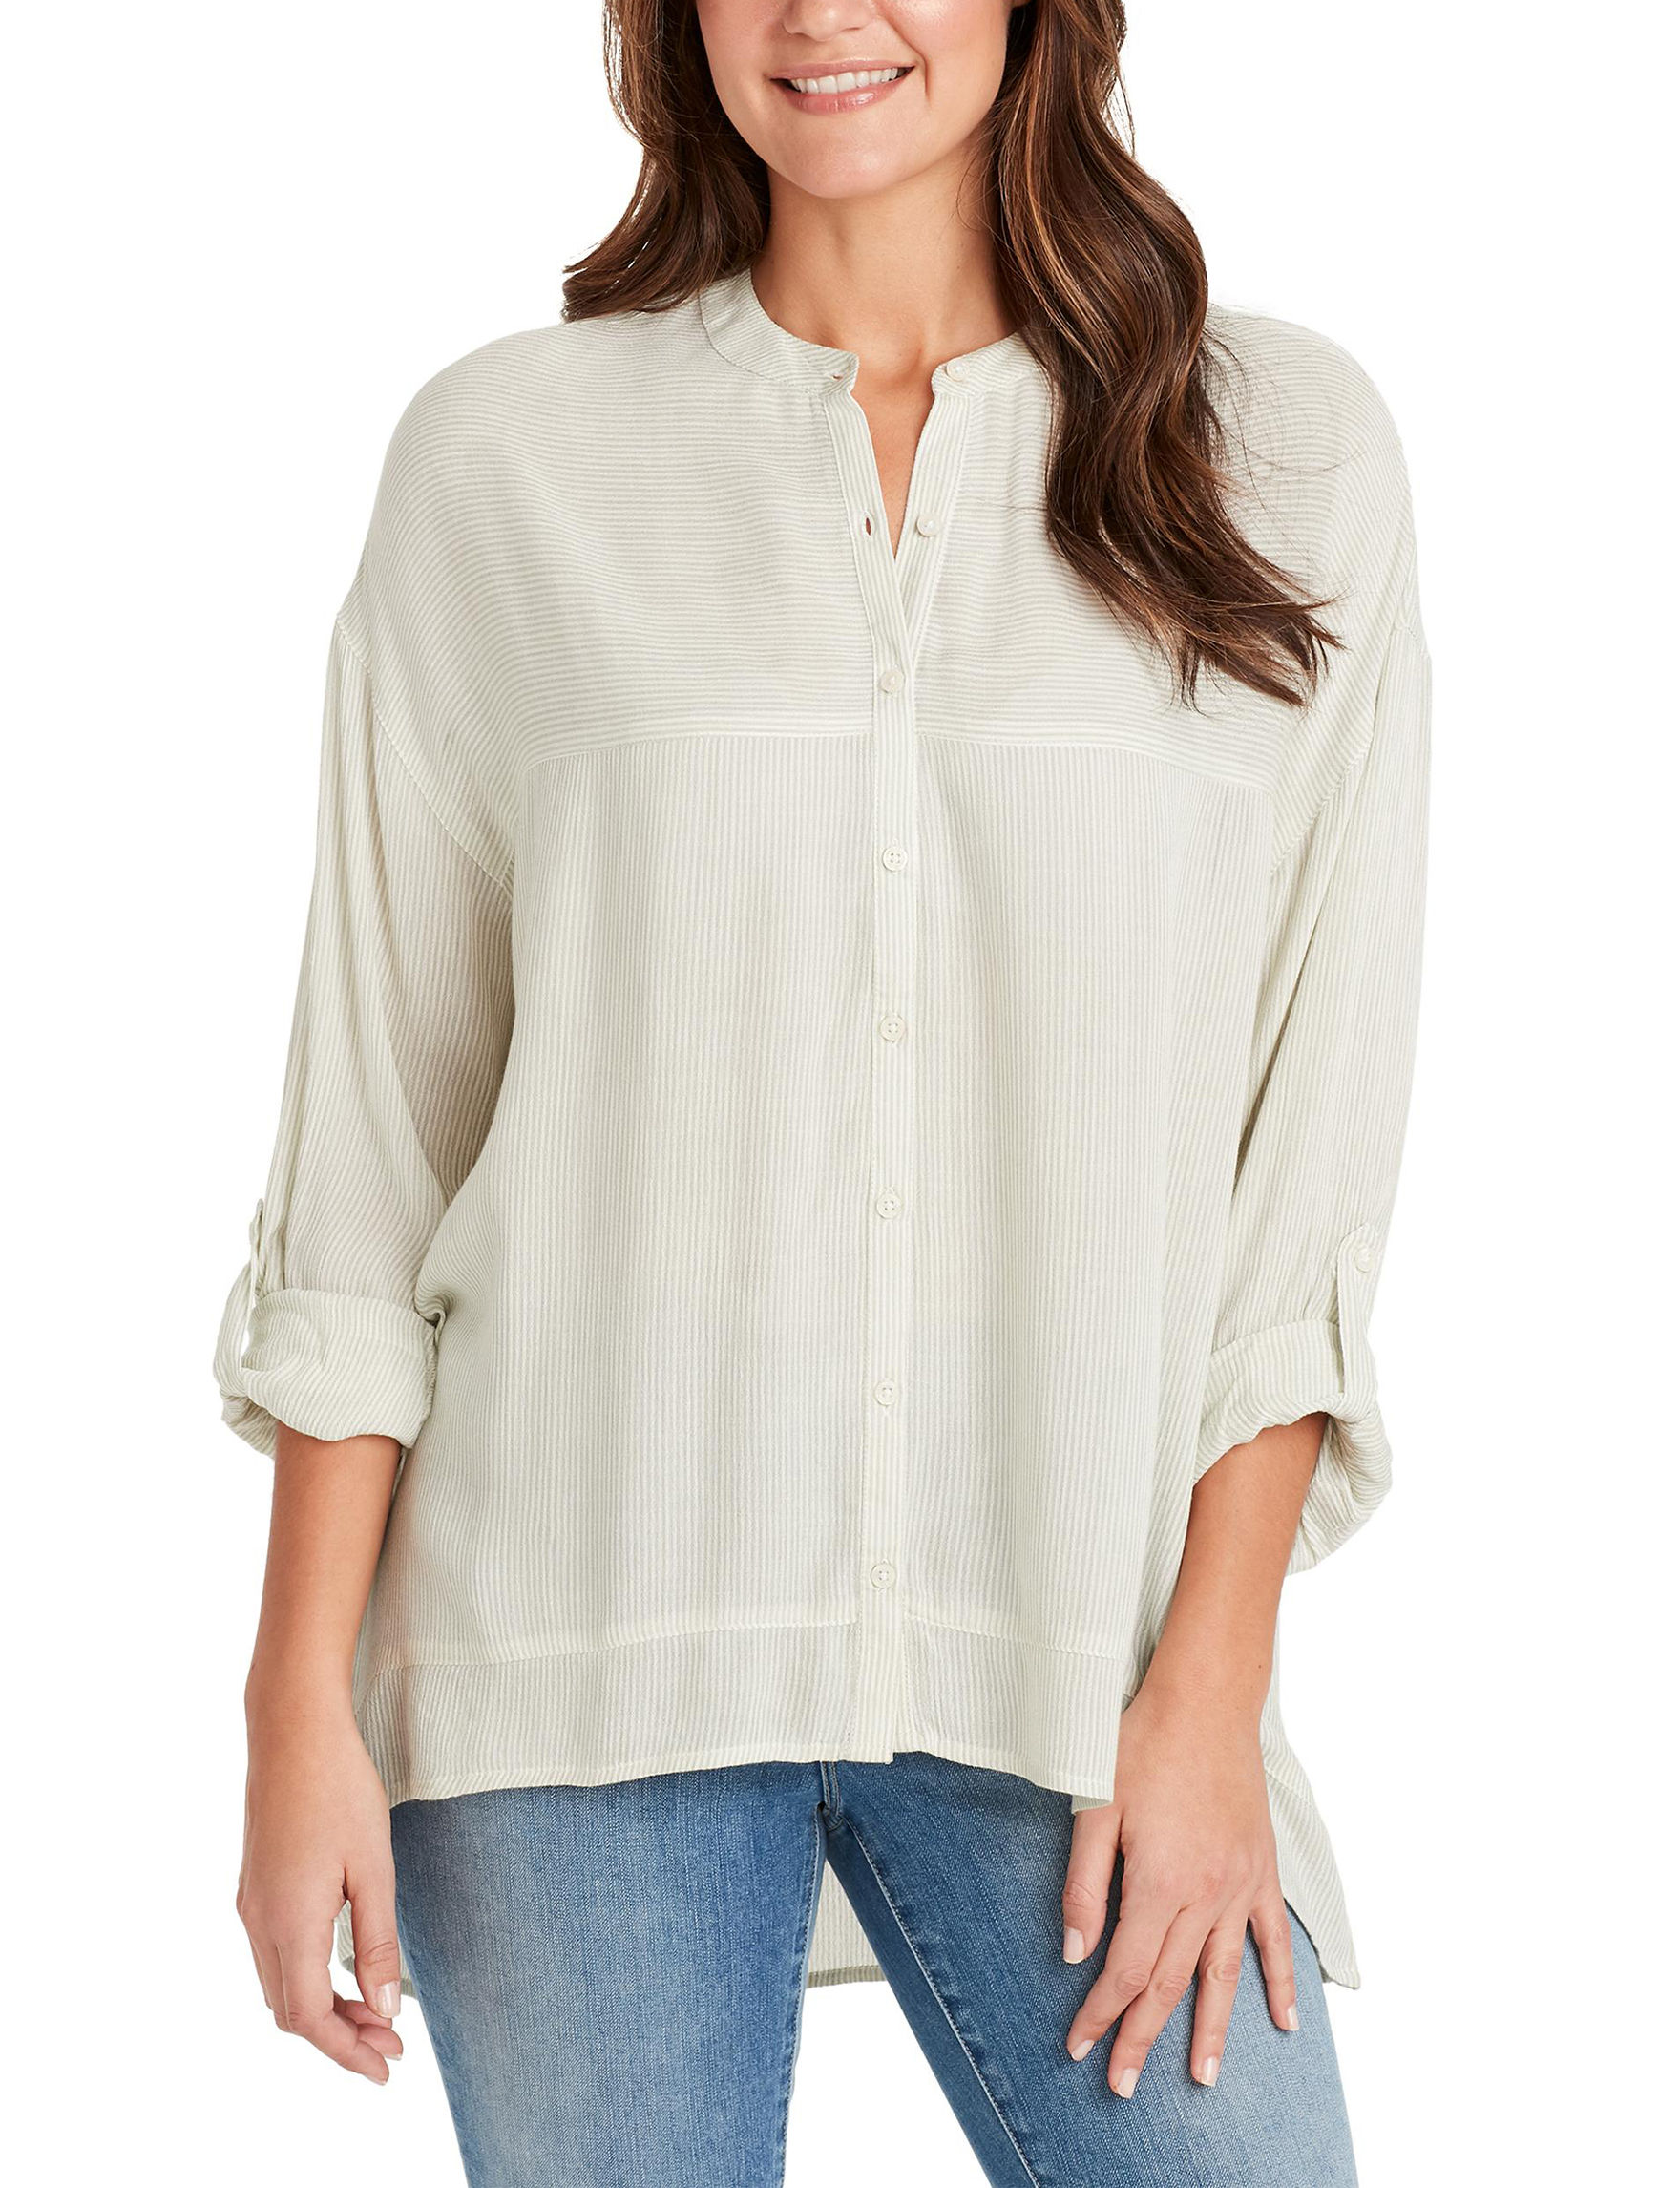 Nine West Seagreen Shirts & Blouses